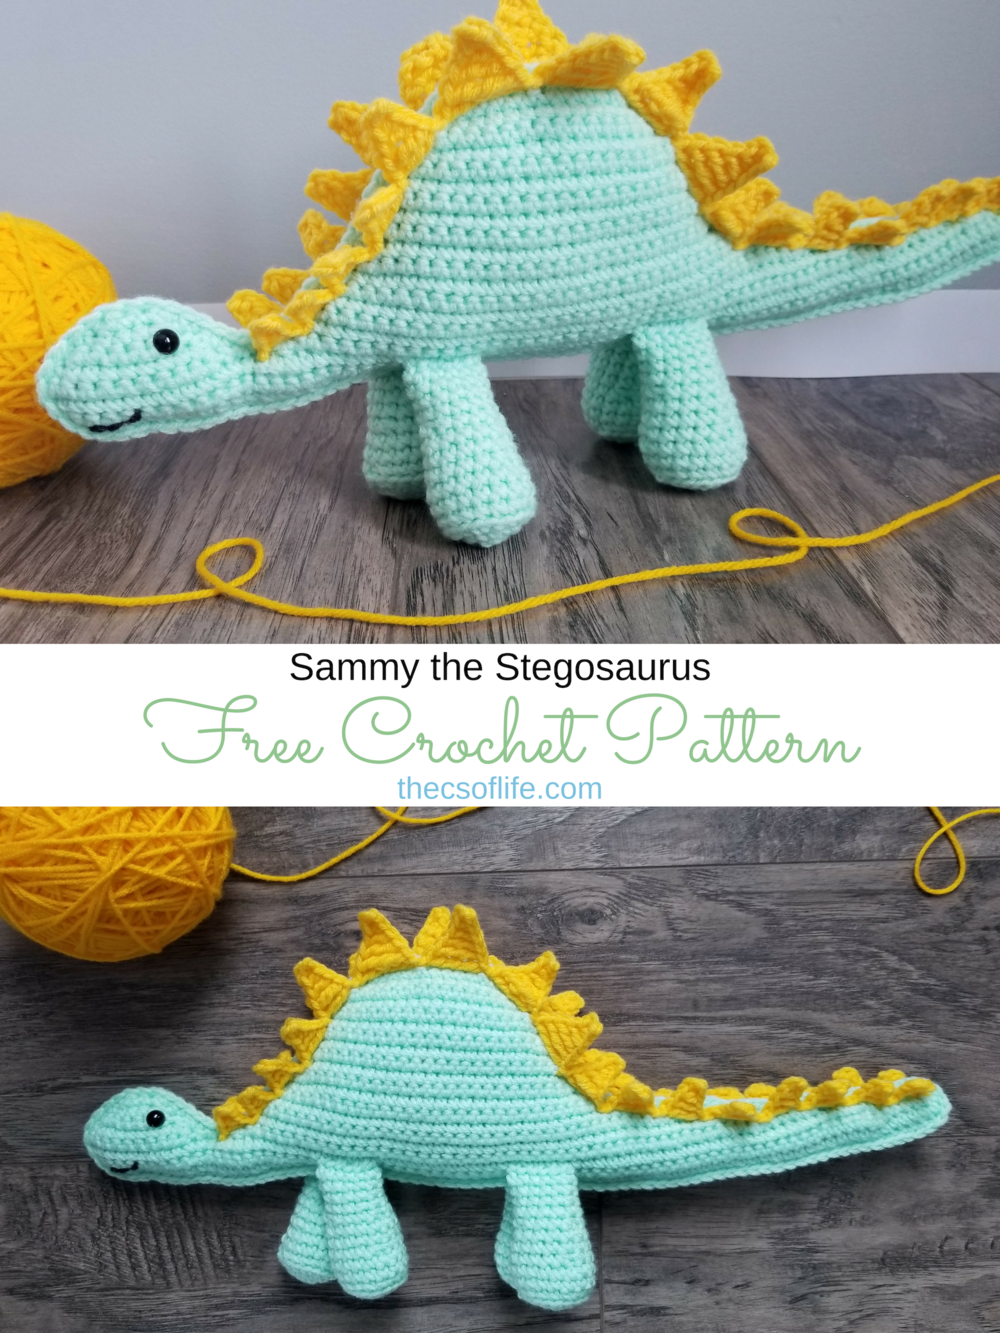 Sammy the Stegosaurus - Free Crochet Pattern